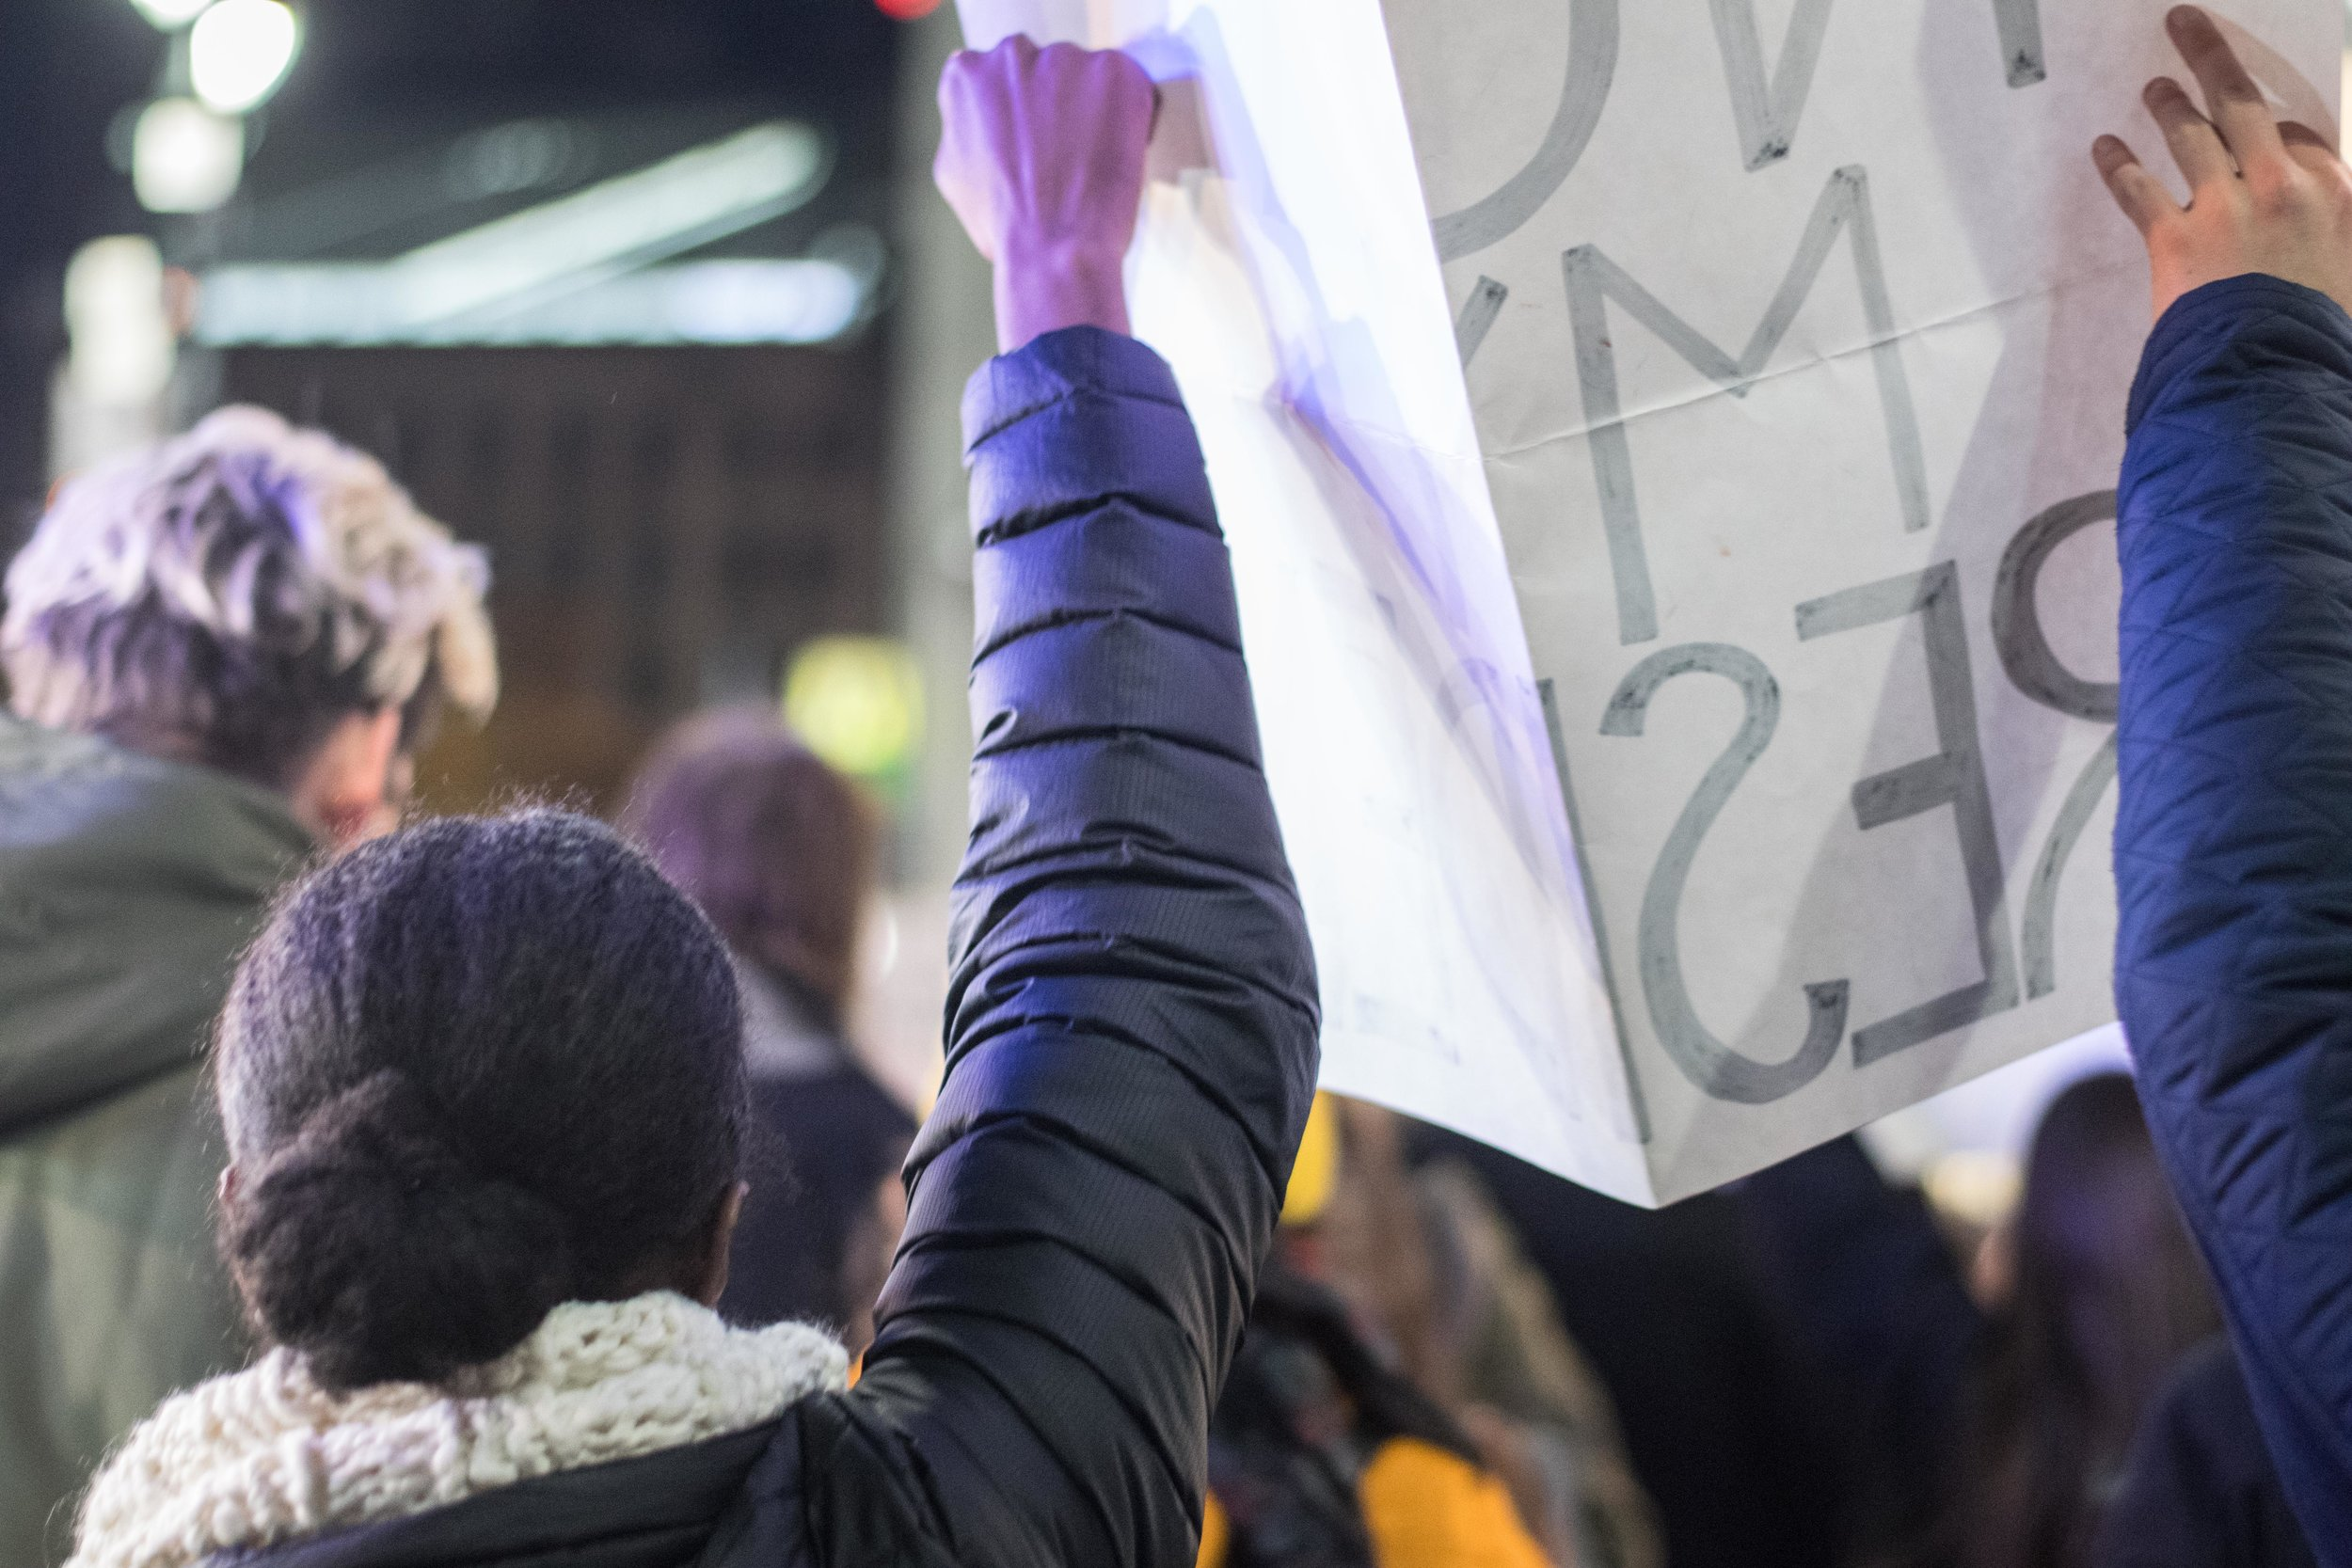 2016-NYC-New-York-Trump-Protest-March-Hand-Arm-Holding-Up-Sign-African-American-Woman